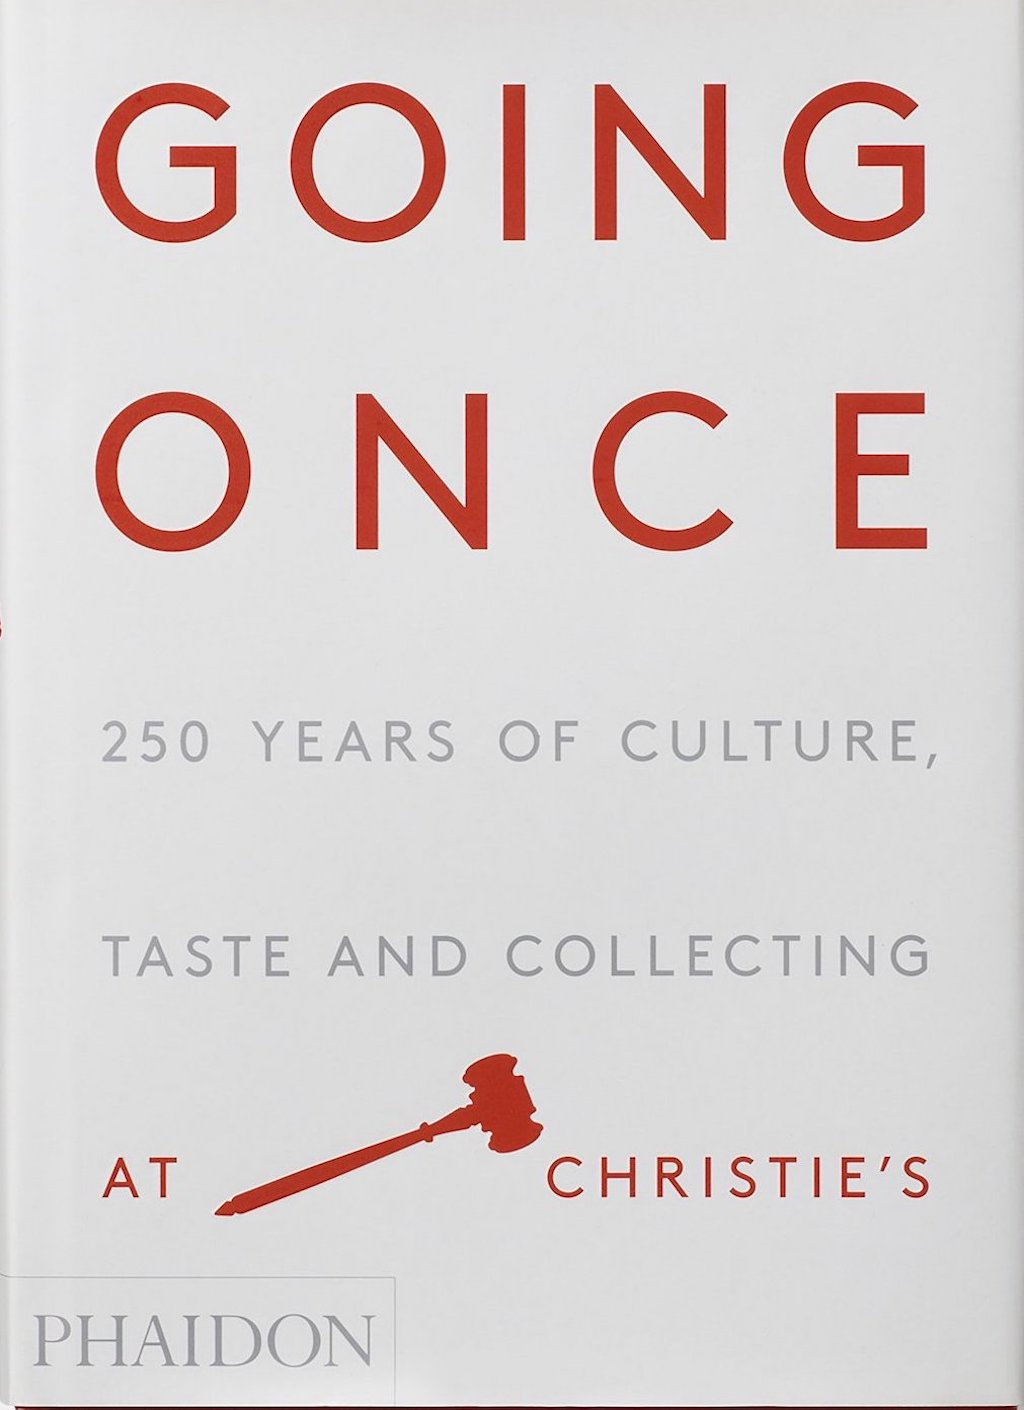 Going Once: 250 Years of Culture, Taste and Collecting at Christie's   Courtesy of Phaidon Press